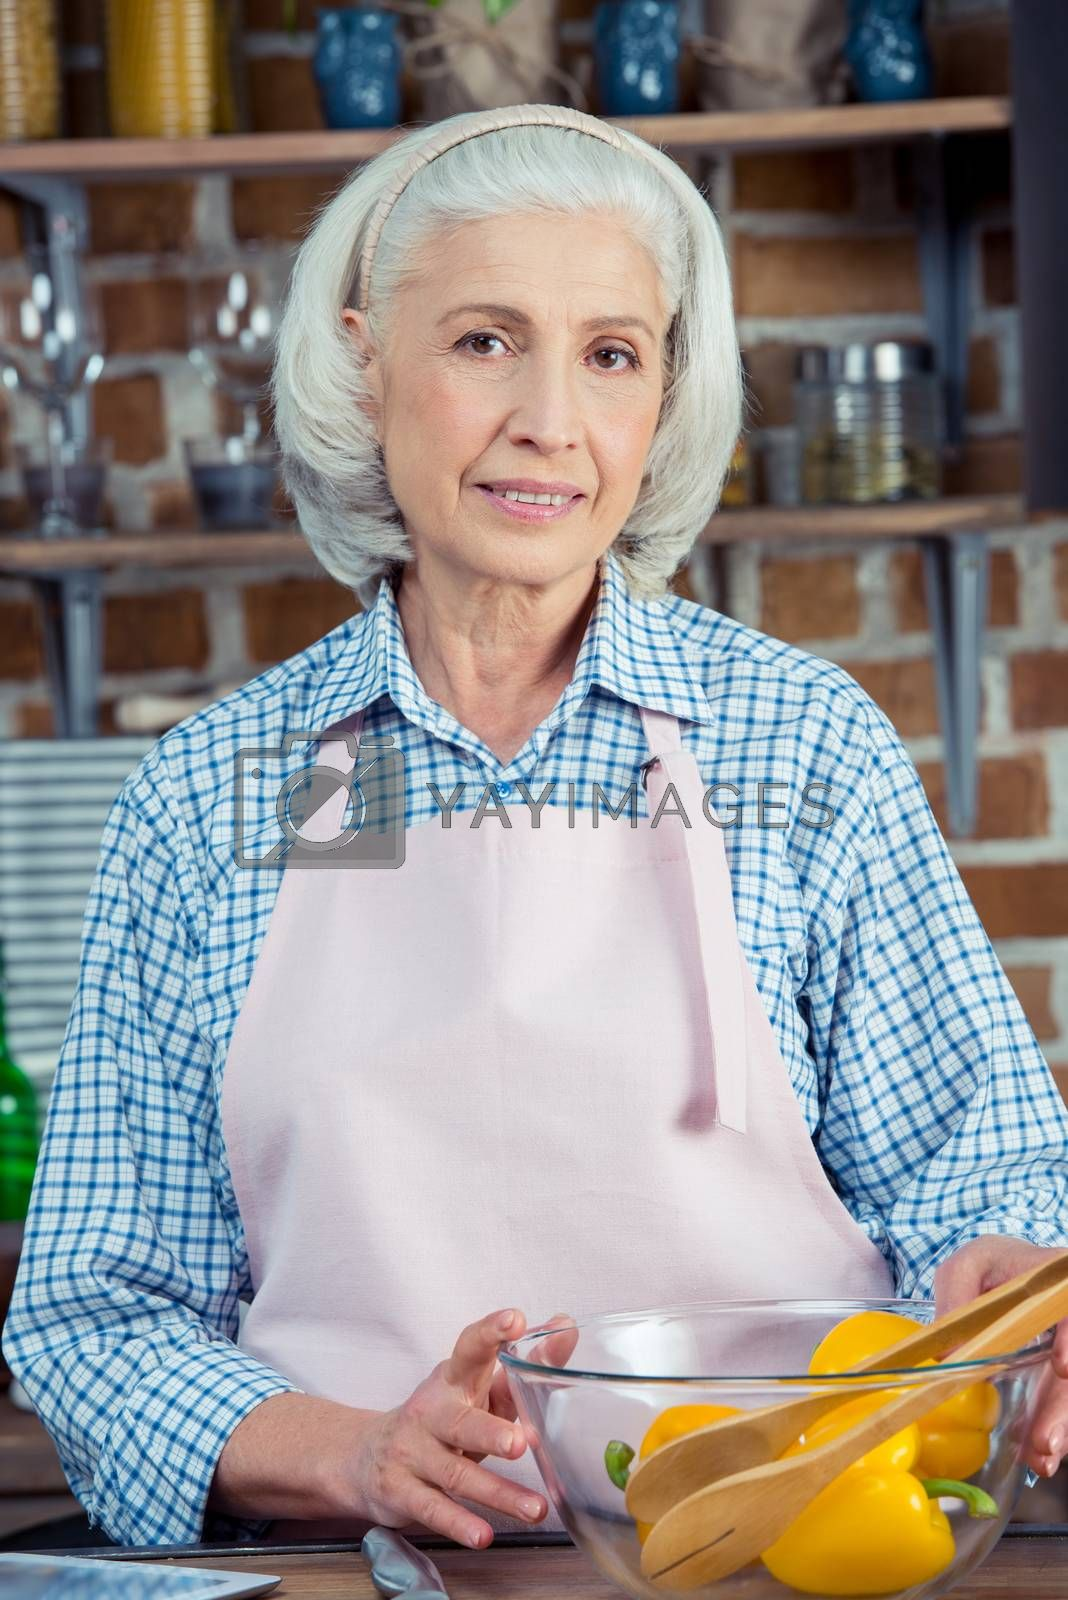 Attractive senior woman in apron smiling at camera in kitchen